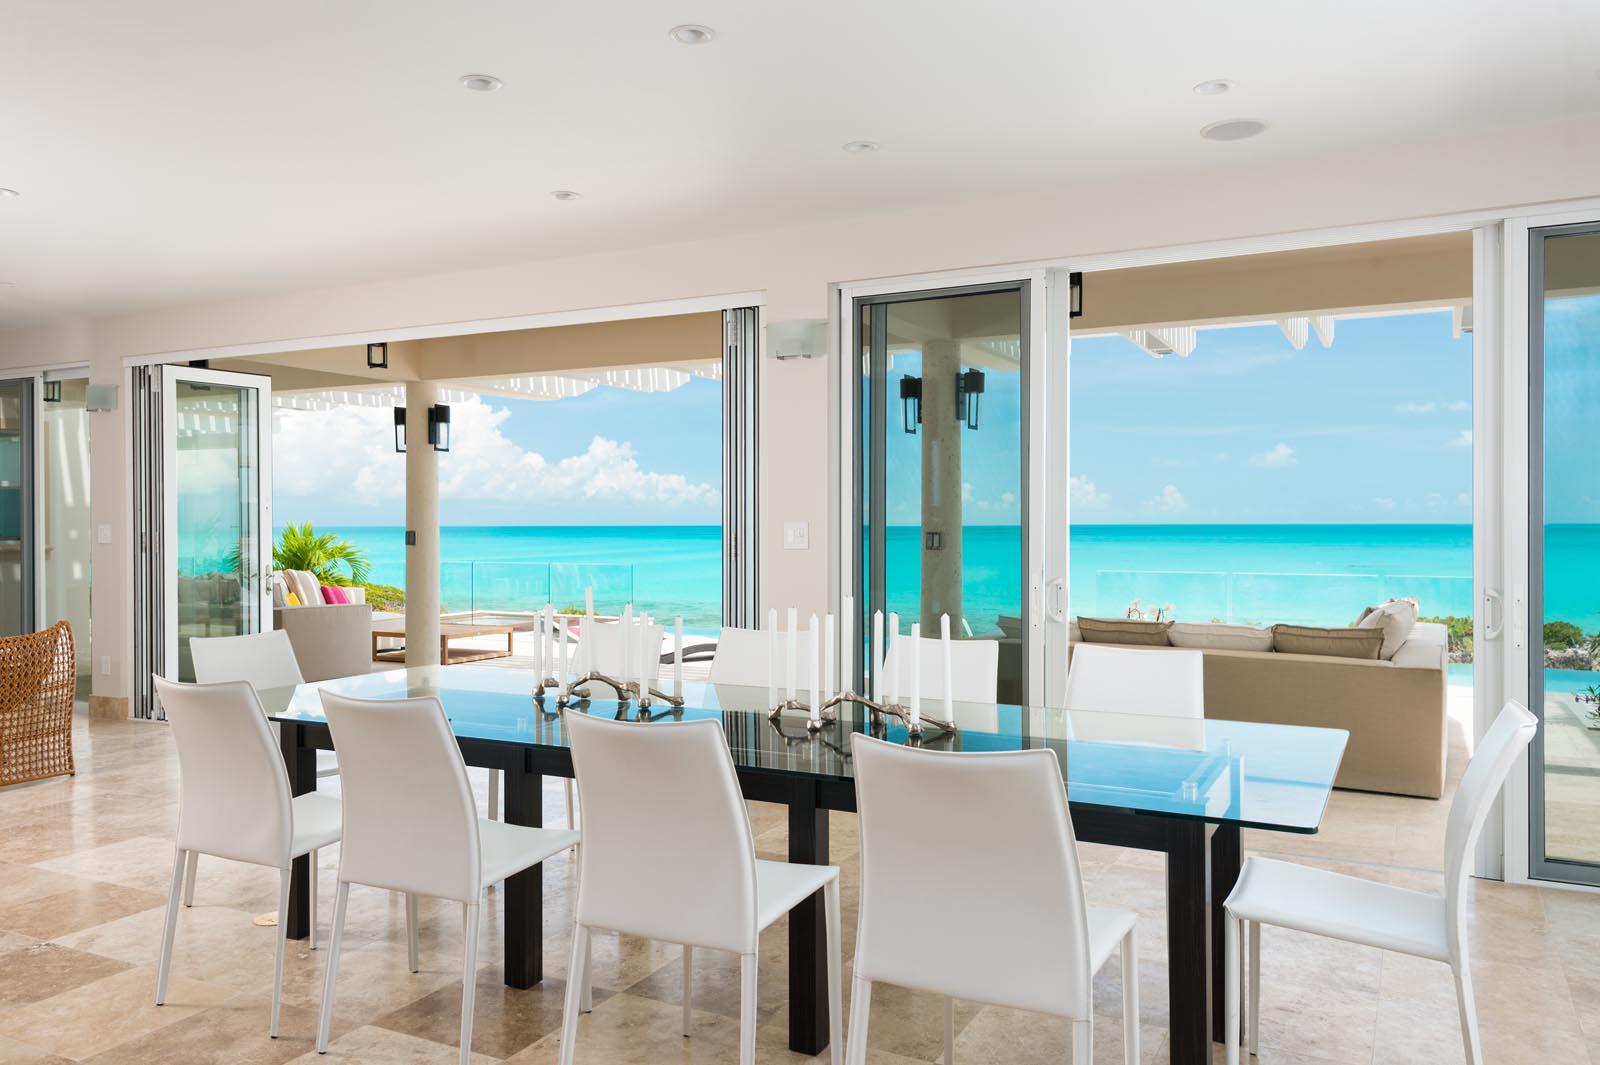 The indoor dining area of this Providenciales luxury villa rental